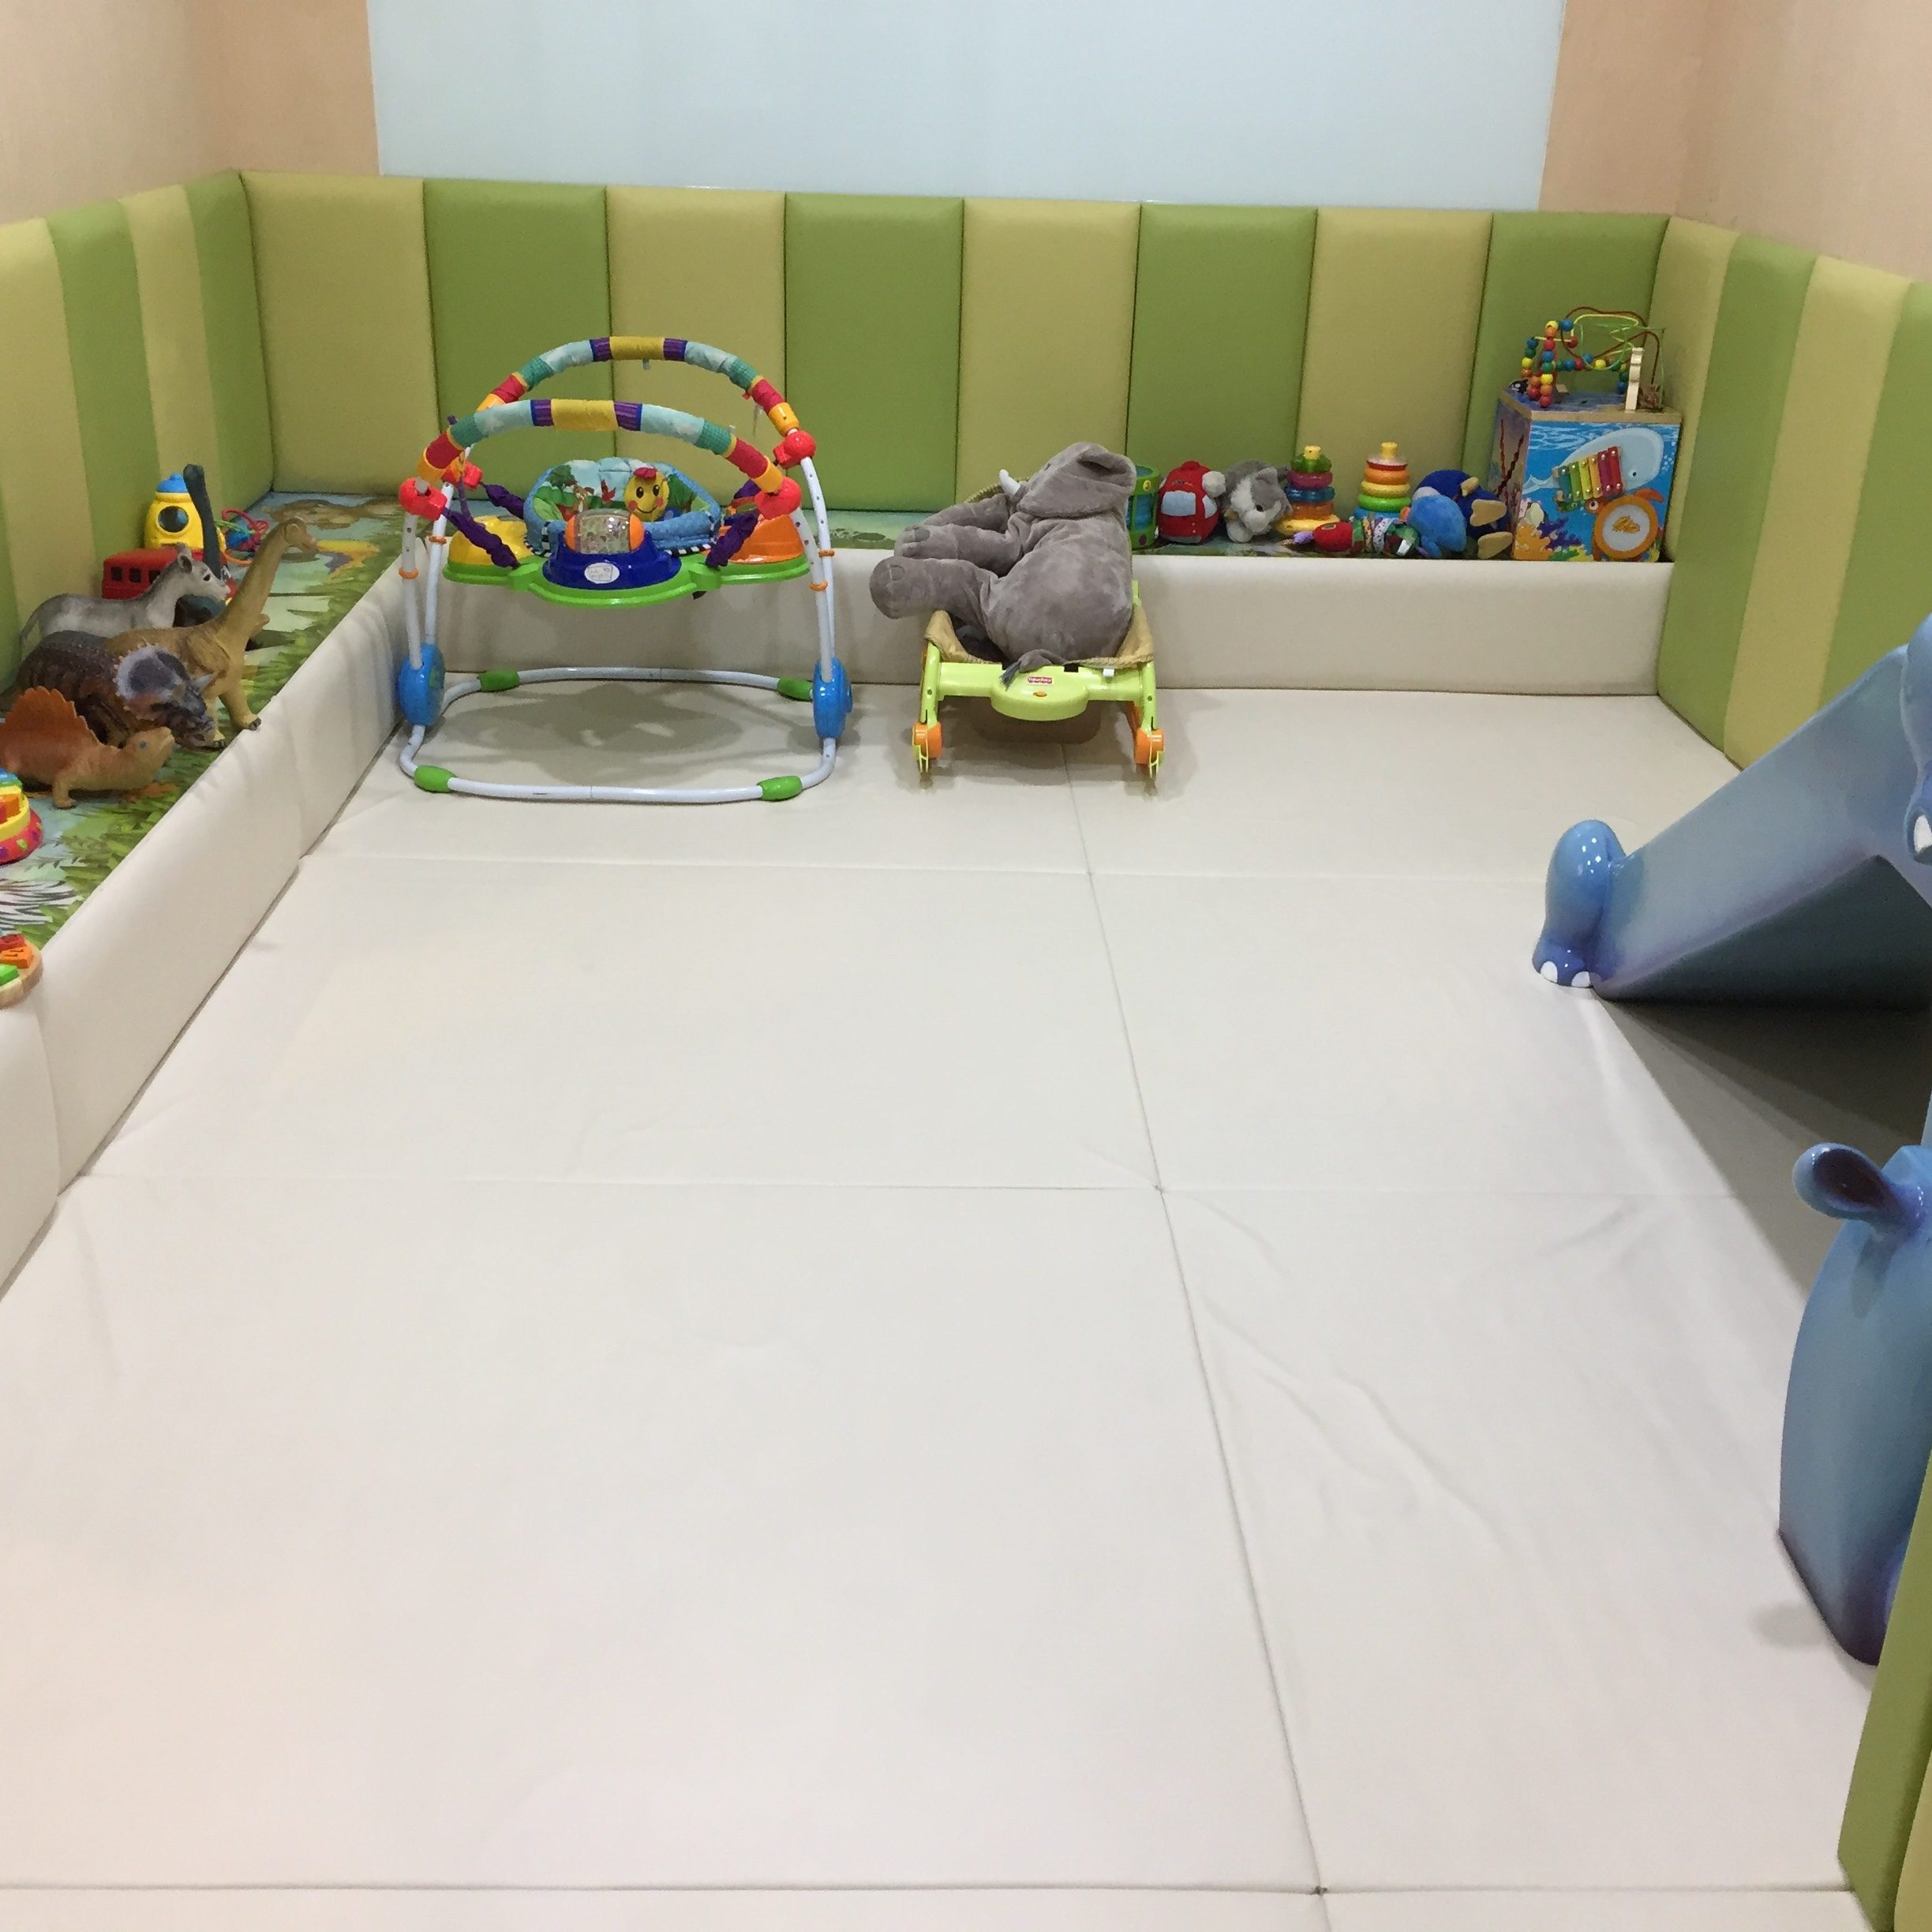 Kid Cafe Furniture: Baby Z Travelling Around Seoul